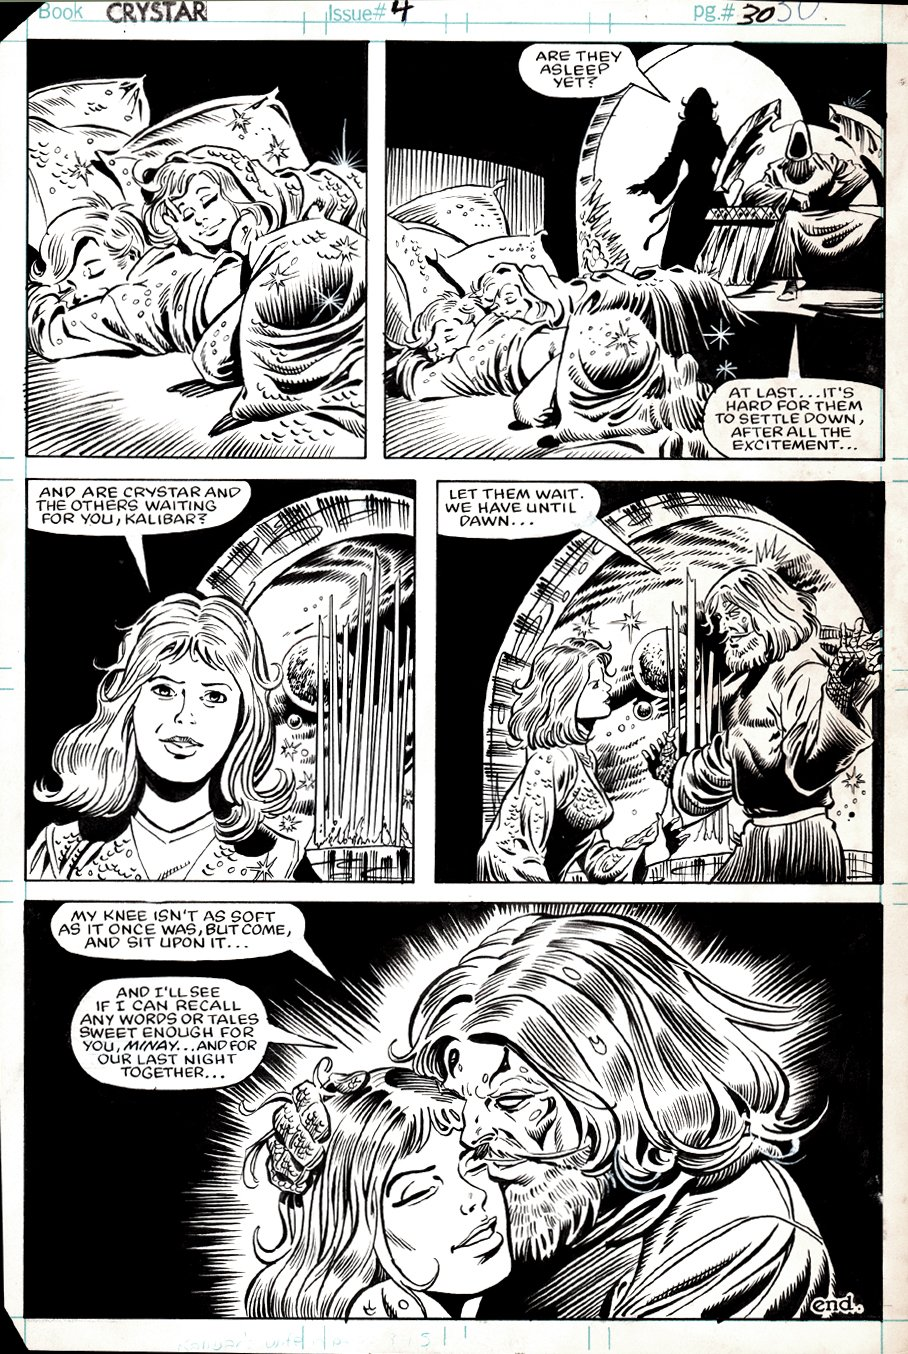 Saga of Crystar, Crystal Warrior #4 LAST PAGE! (1983)